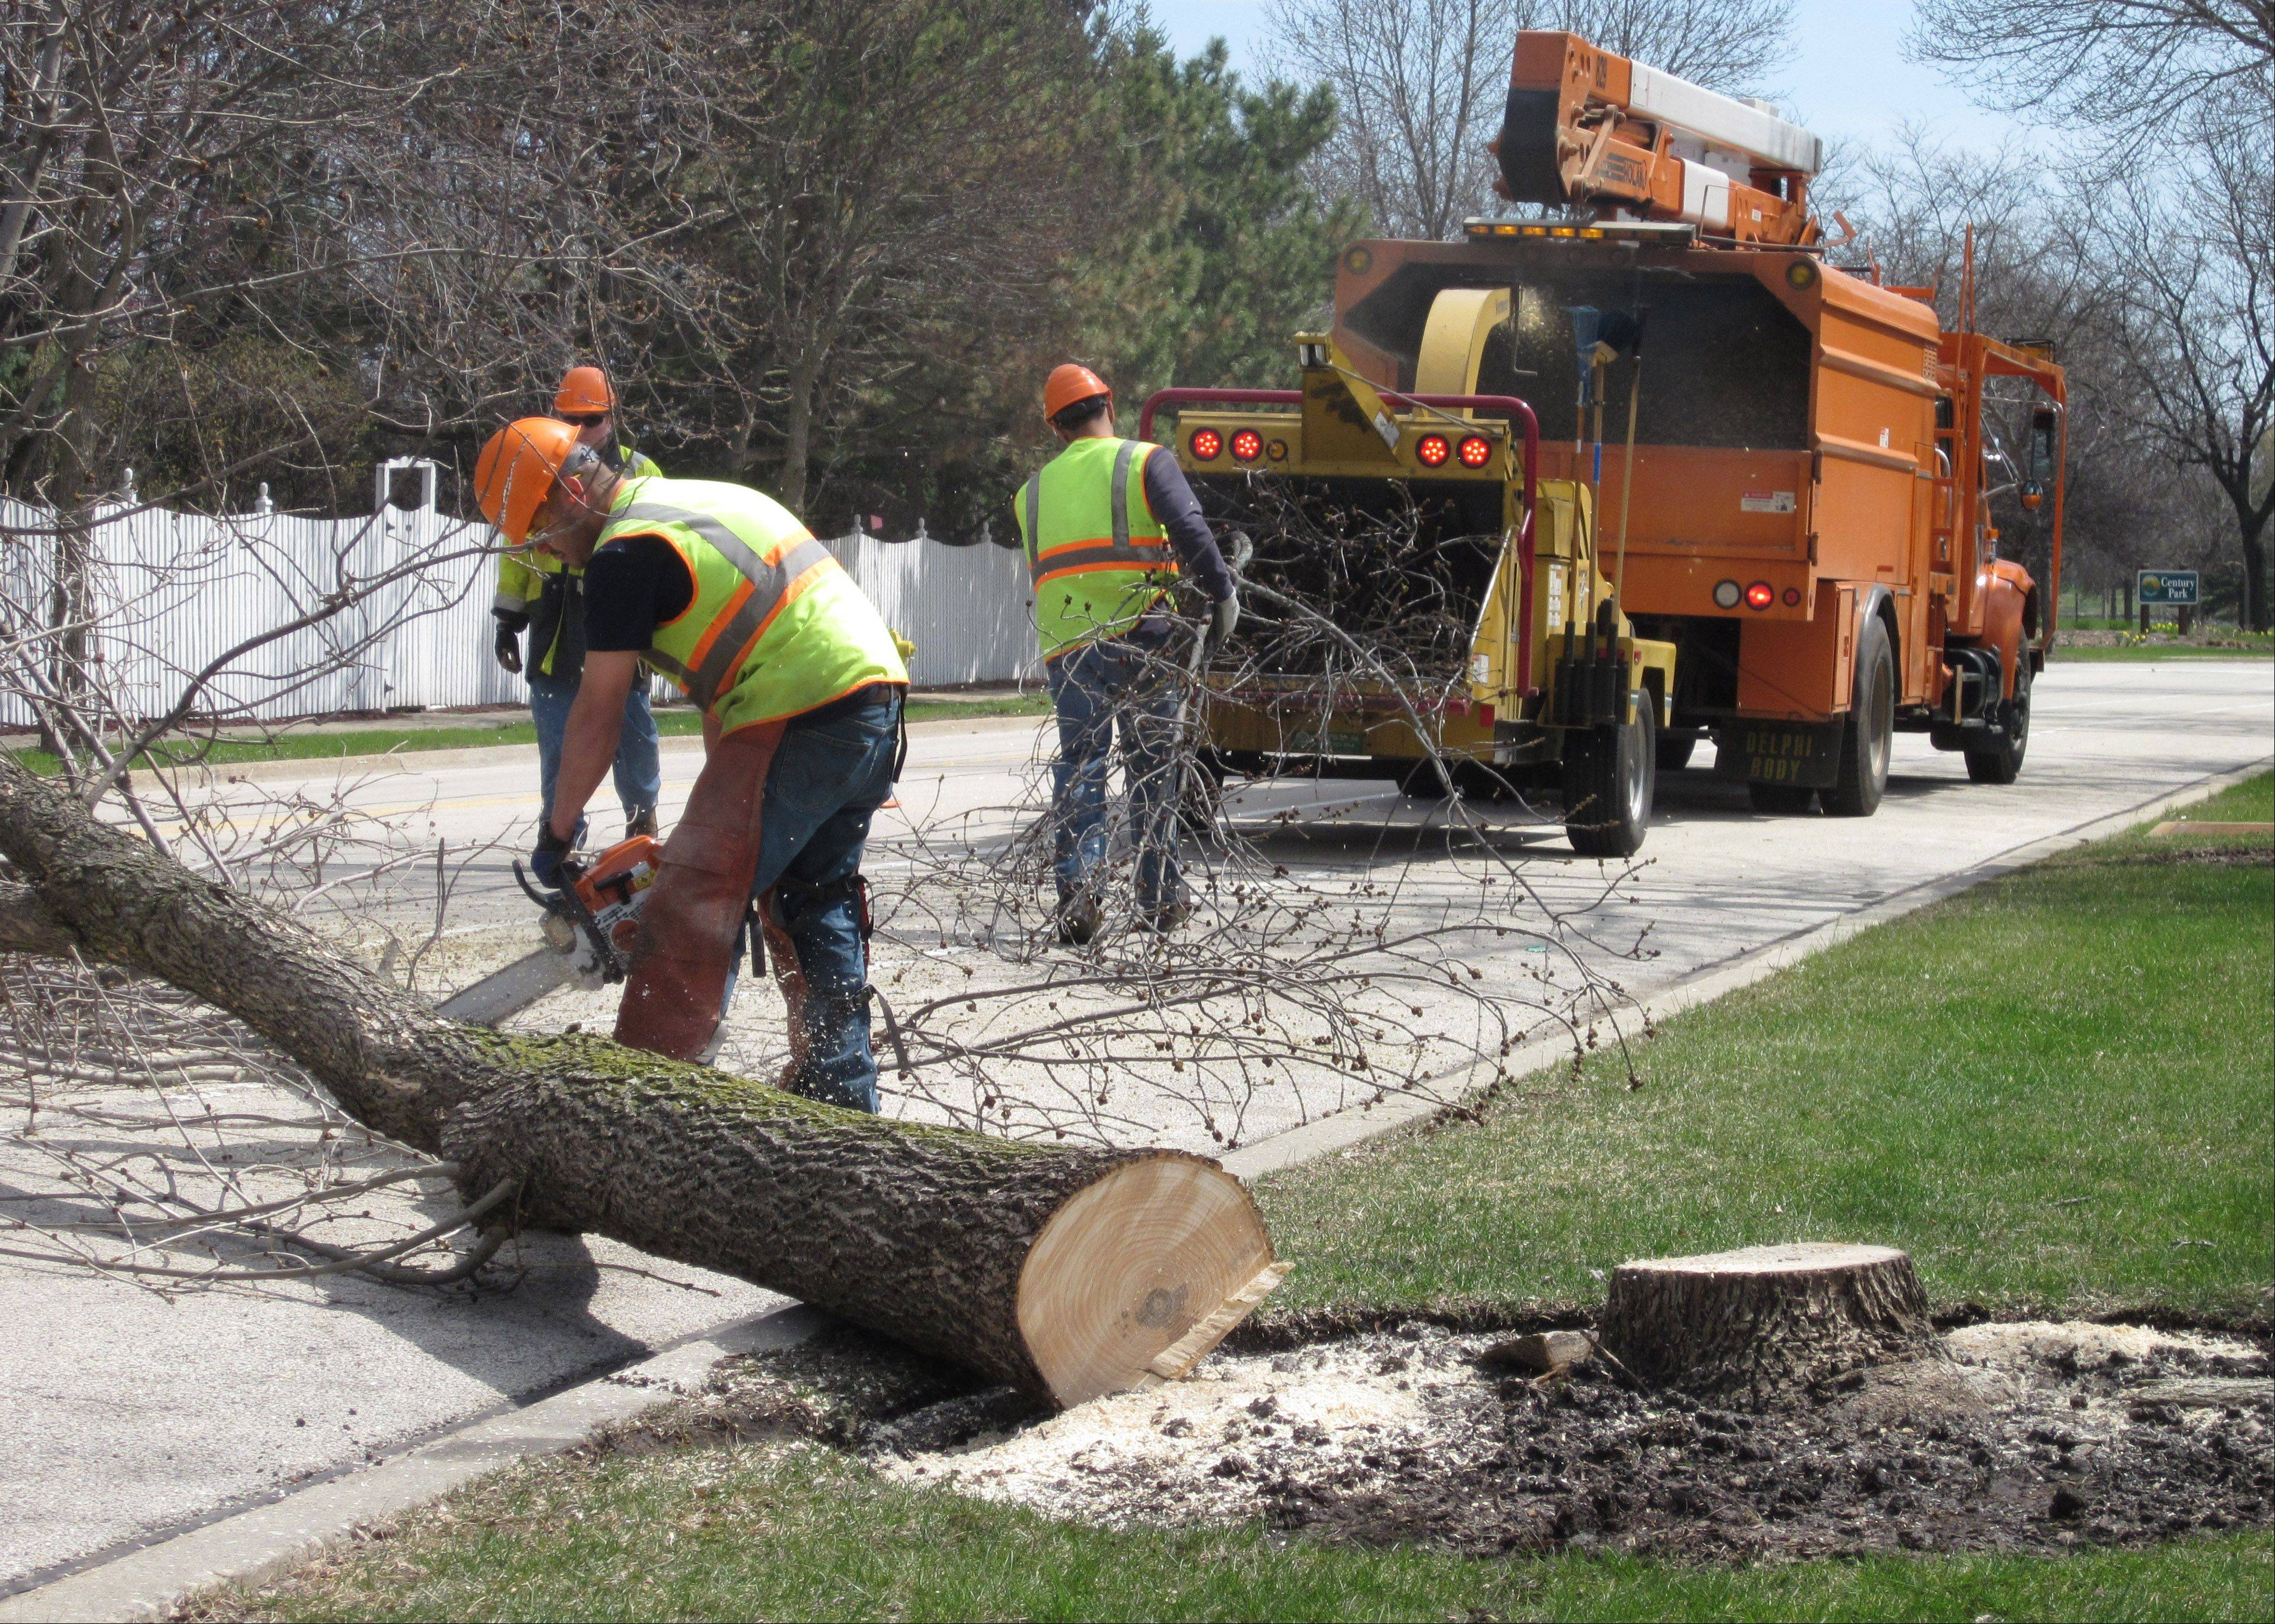 About 200 trees infected by the emerald ash borer were removed last year in Vernon Hills. This year, crews expect to remove 550 more infected trees.